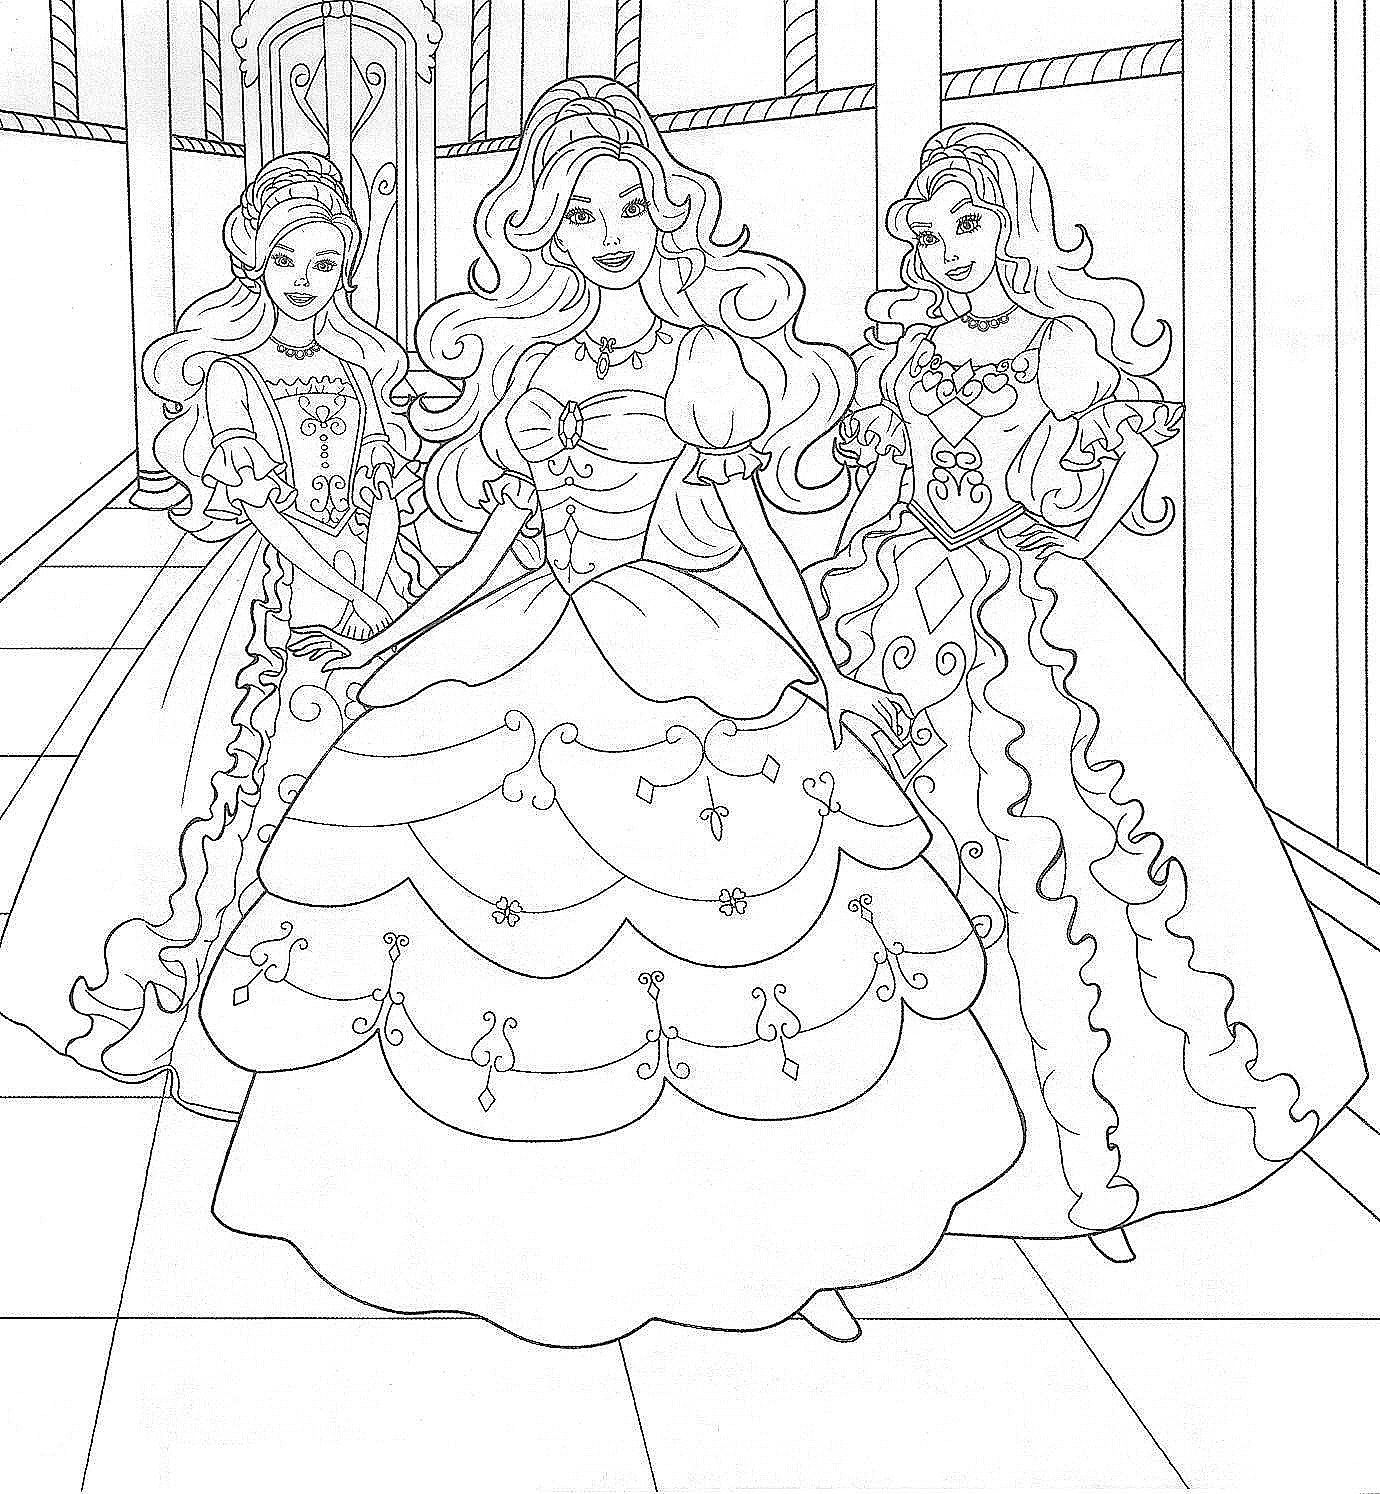 Barbie Movies Photo Barbie Coloring Pages Barbie Coloring Pages Princess Coloring Pages Barbie Coloring